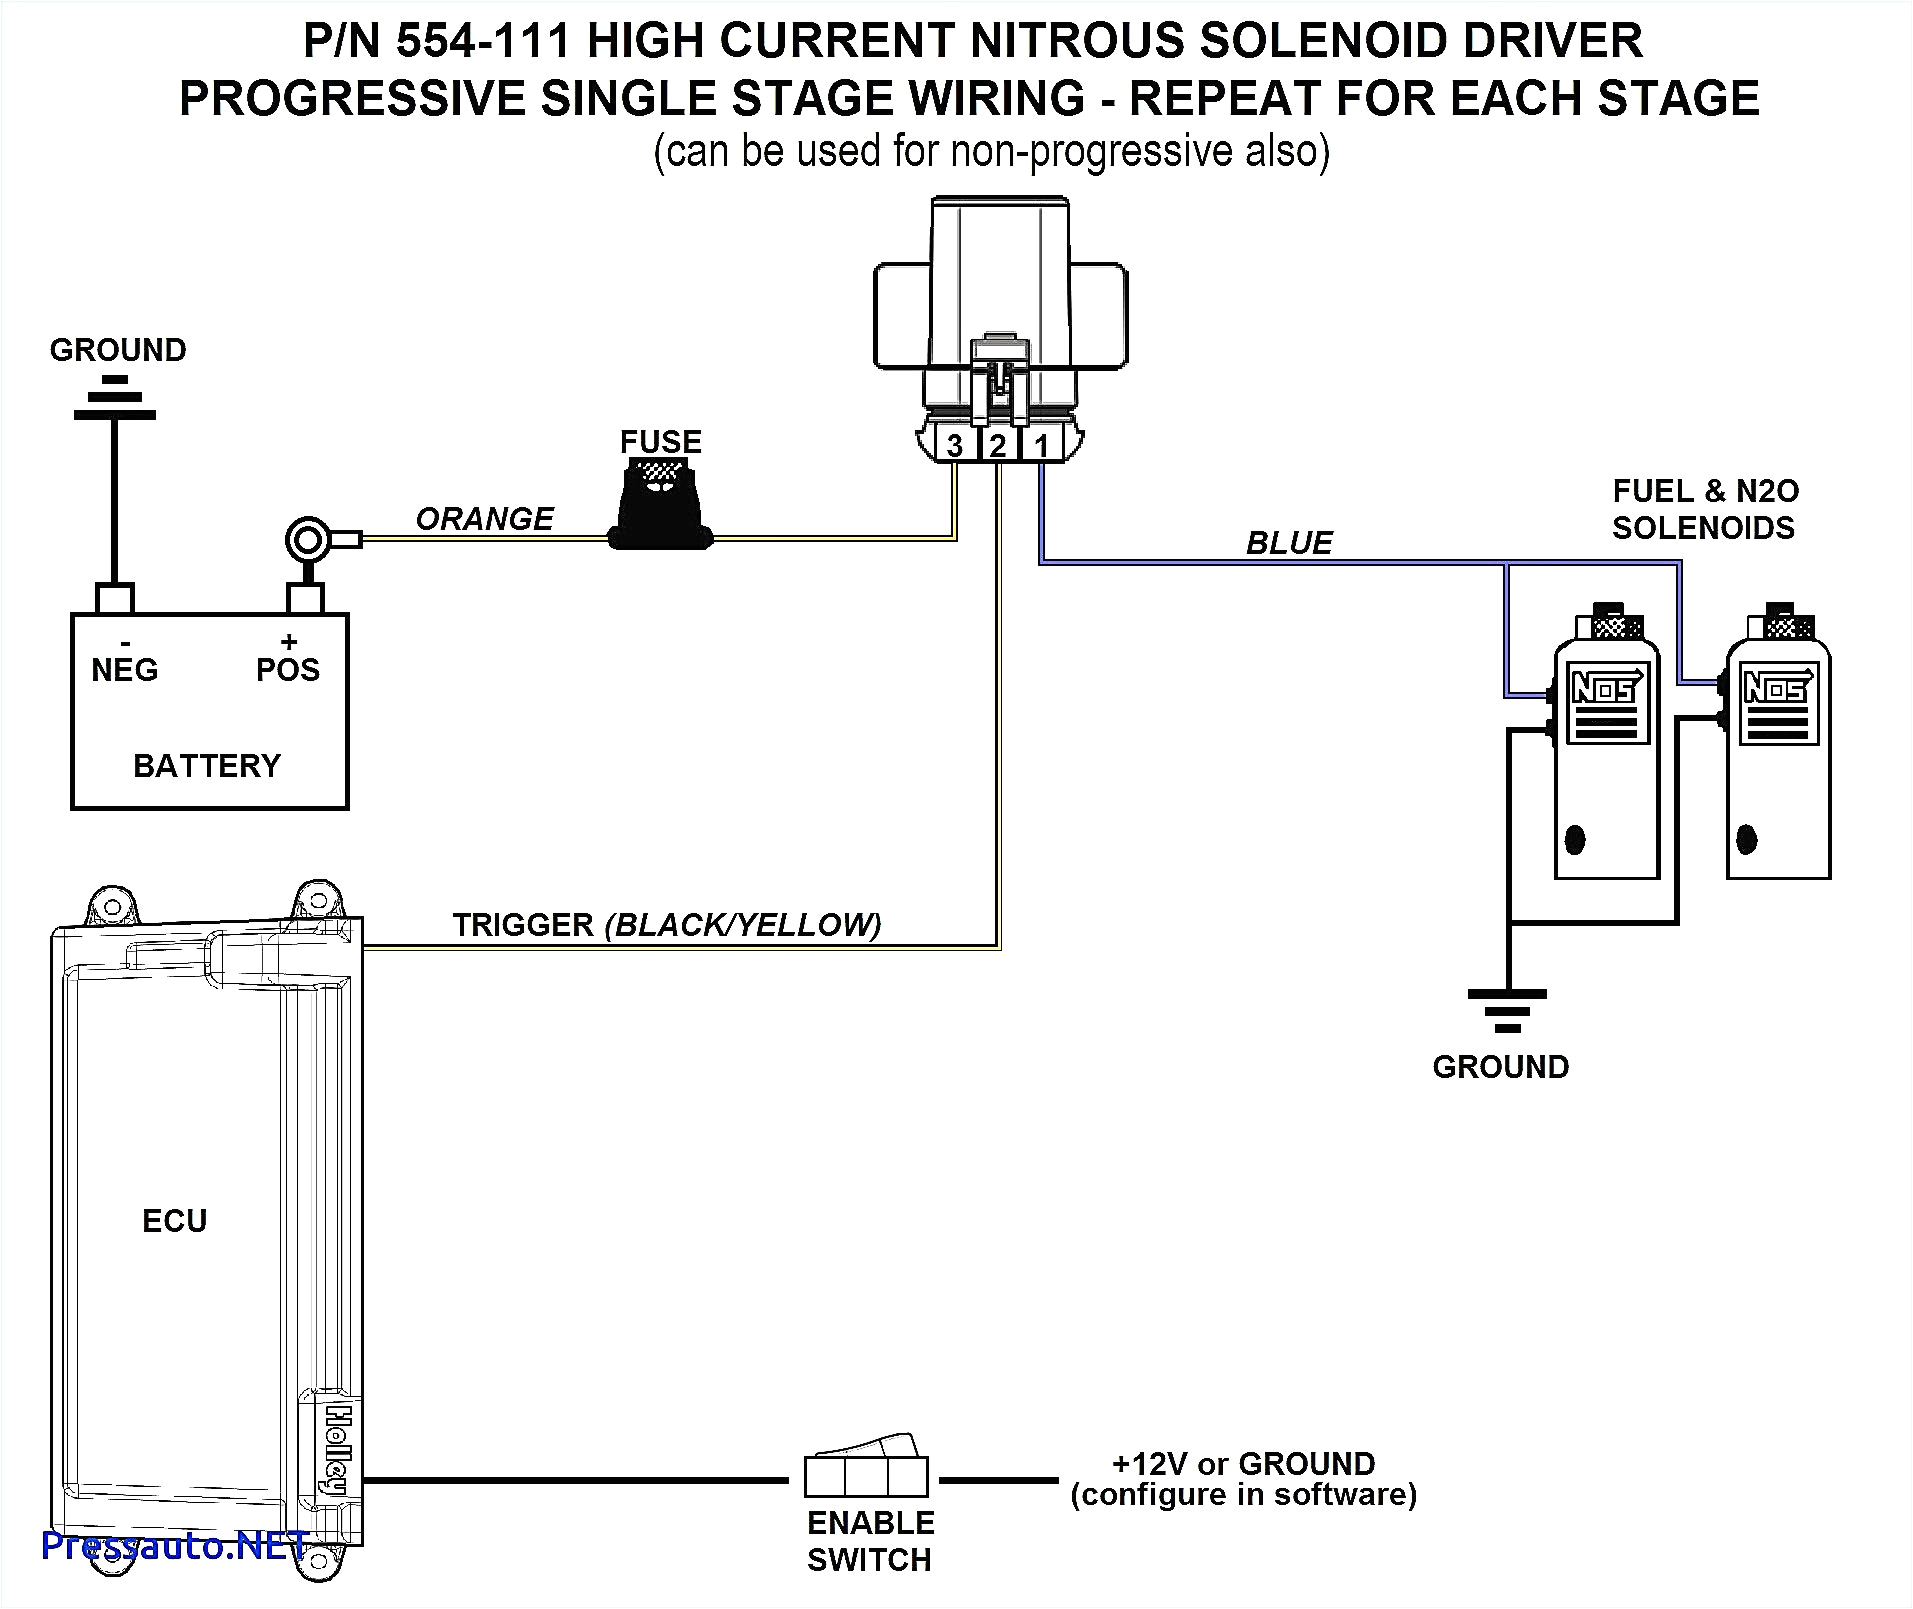 Wiring Diagram for An Electric Fuel Pump and Relay 1985 Nissan 300zx Fuel Pump Relay Diagram Wiring Wiring Diagram User